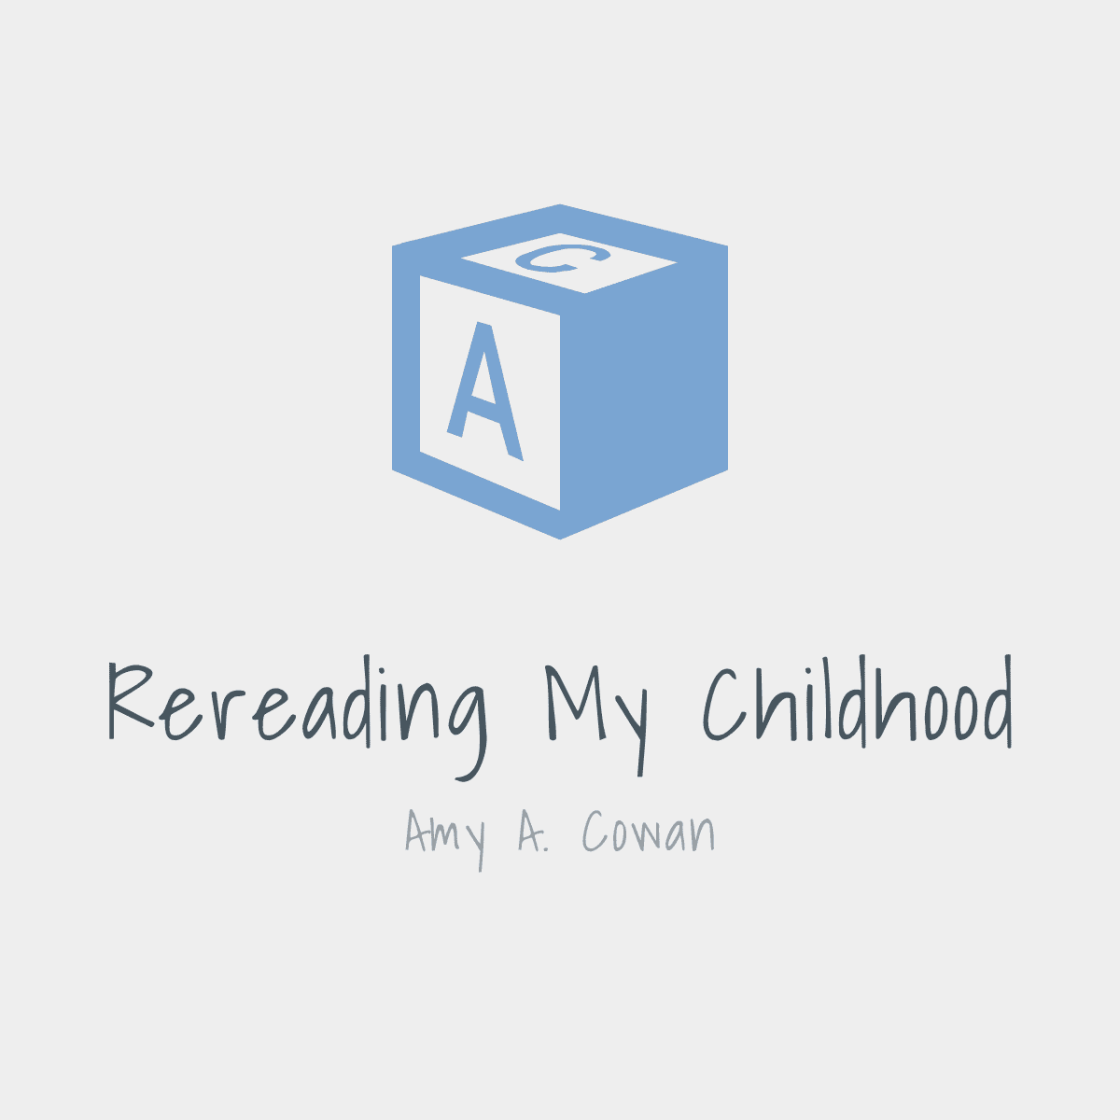 Logo for Rereading My Childhood by Amy A. Cowan